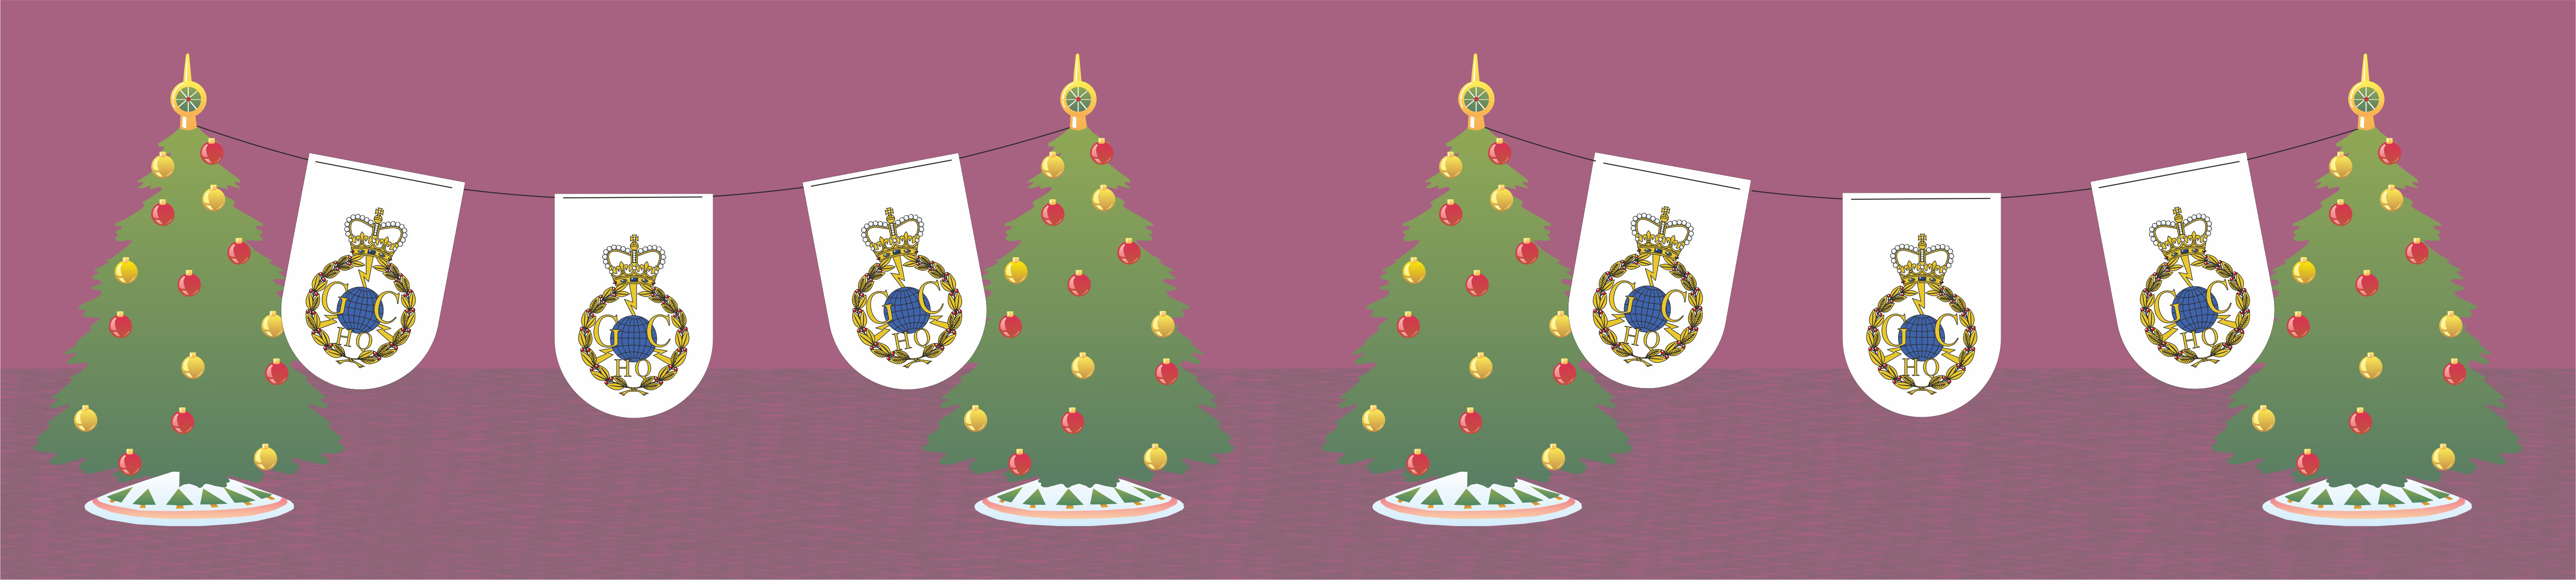 Gchq quiz solution the full answers but can you understand them if you noticed the picture of the christmas trees with the gchq crests strung between them above the first question you are part way there aljukfo Choice Image